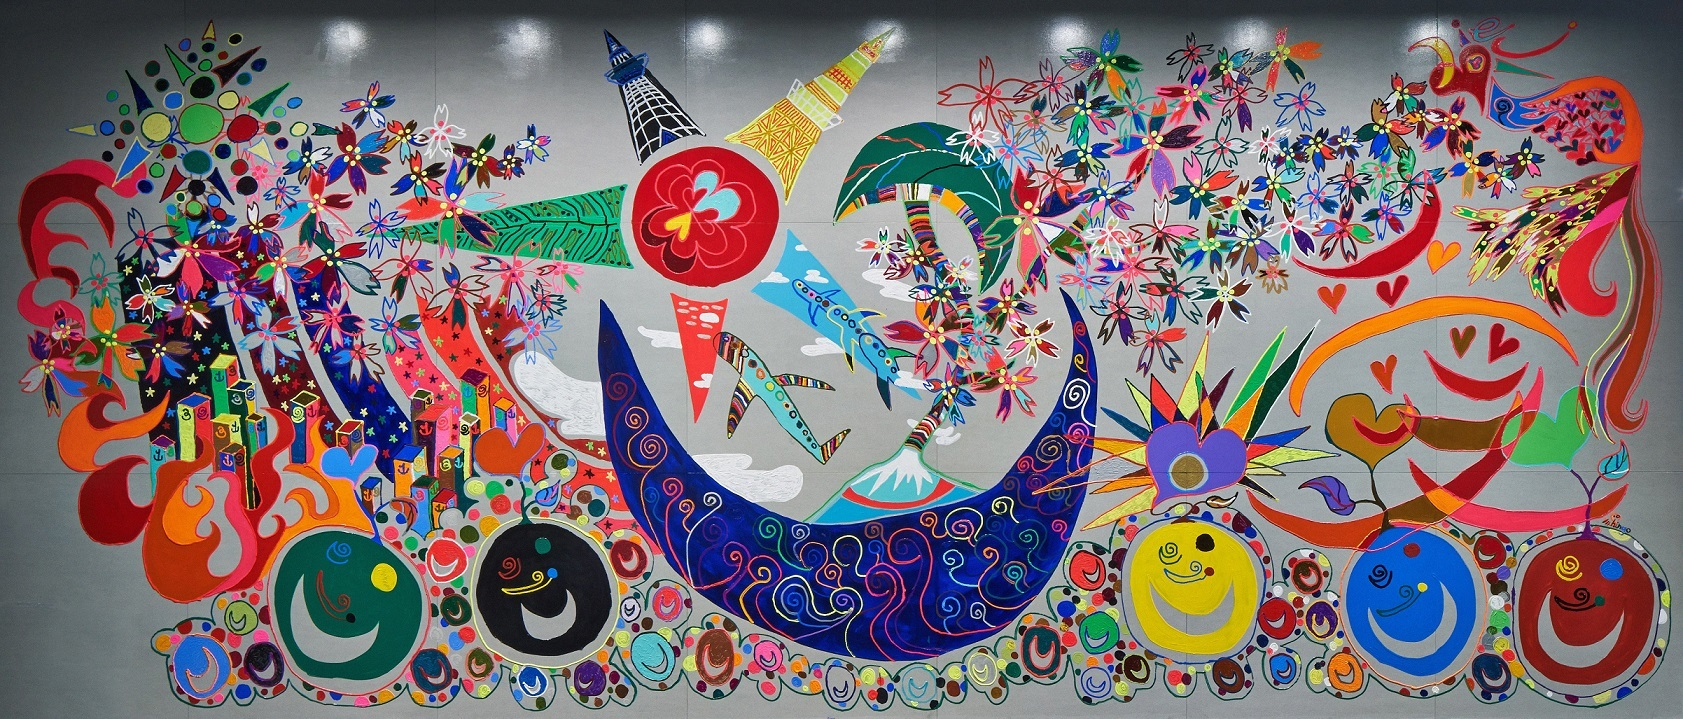 Shingo Katori's artwork image  The mural of Nippon Foundation Paralympic Support Center Office